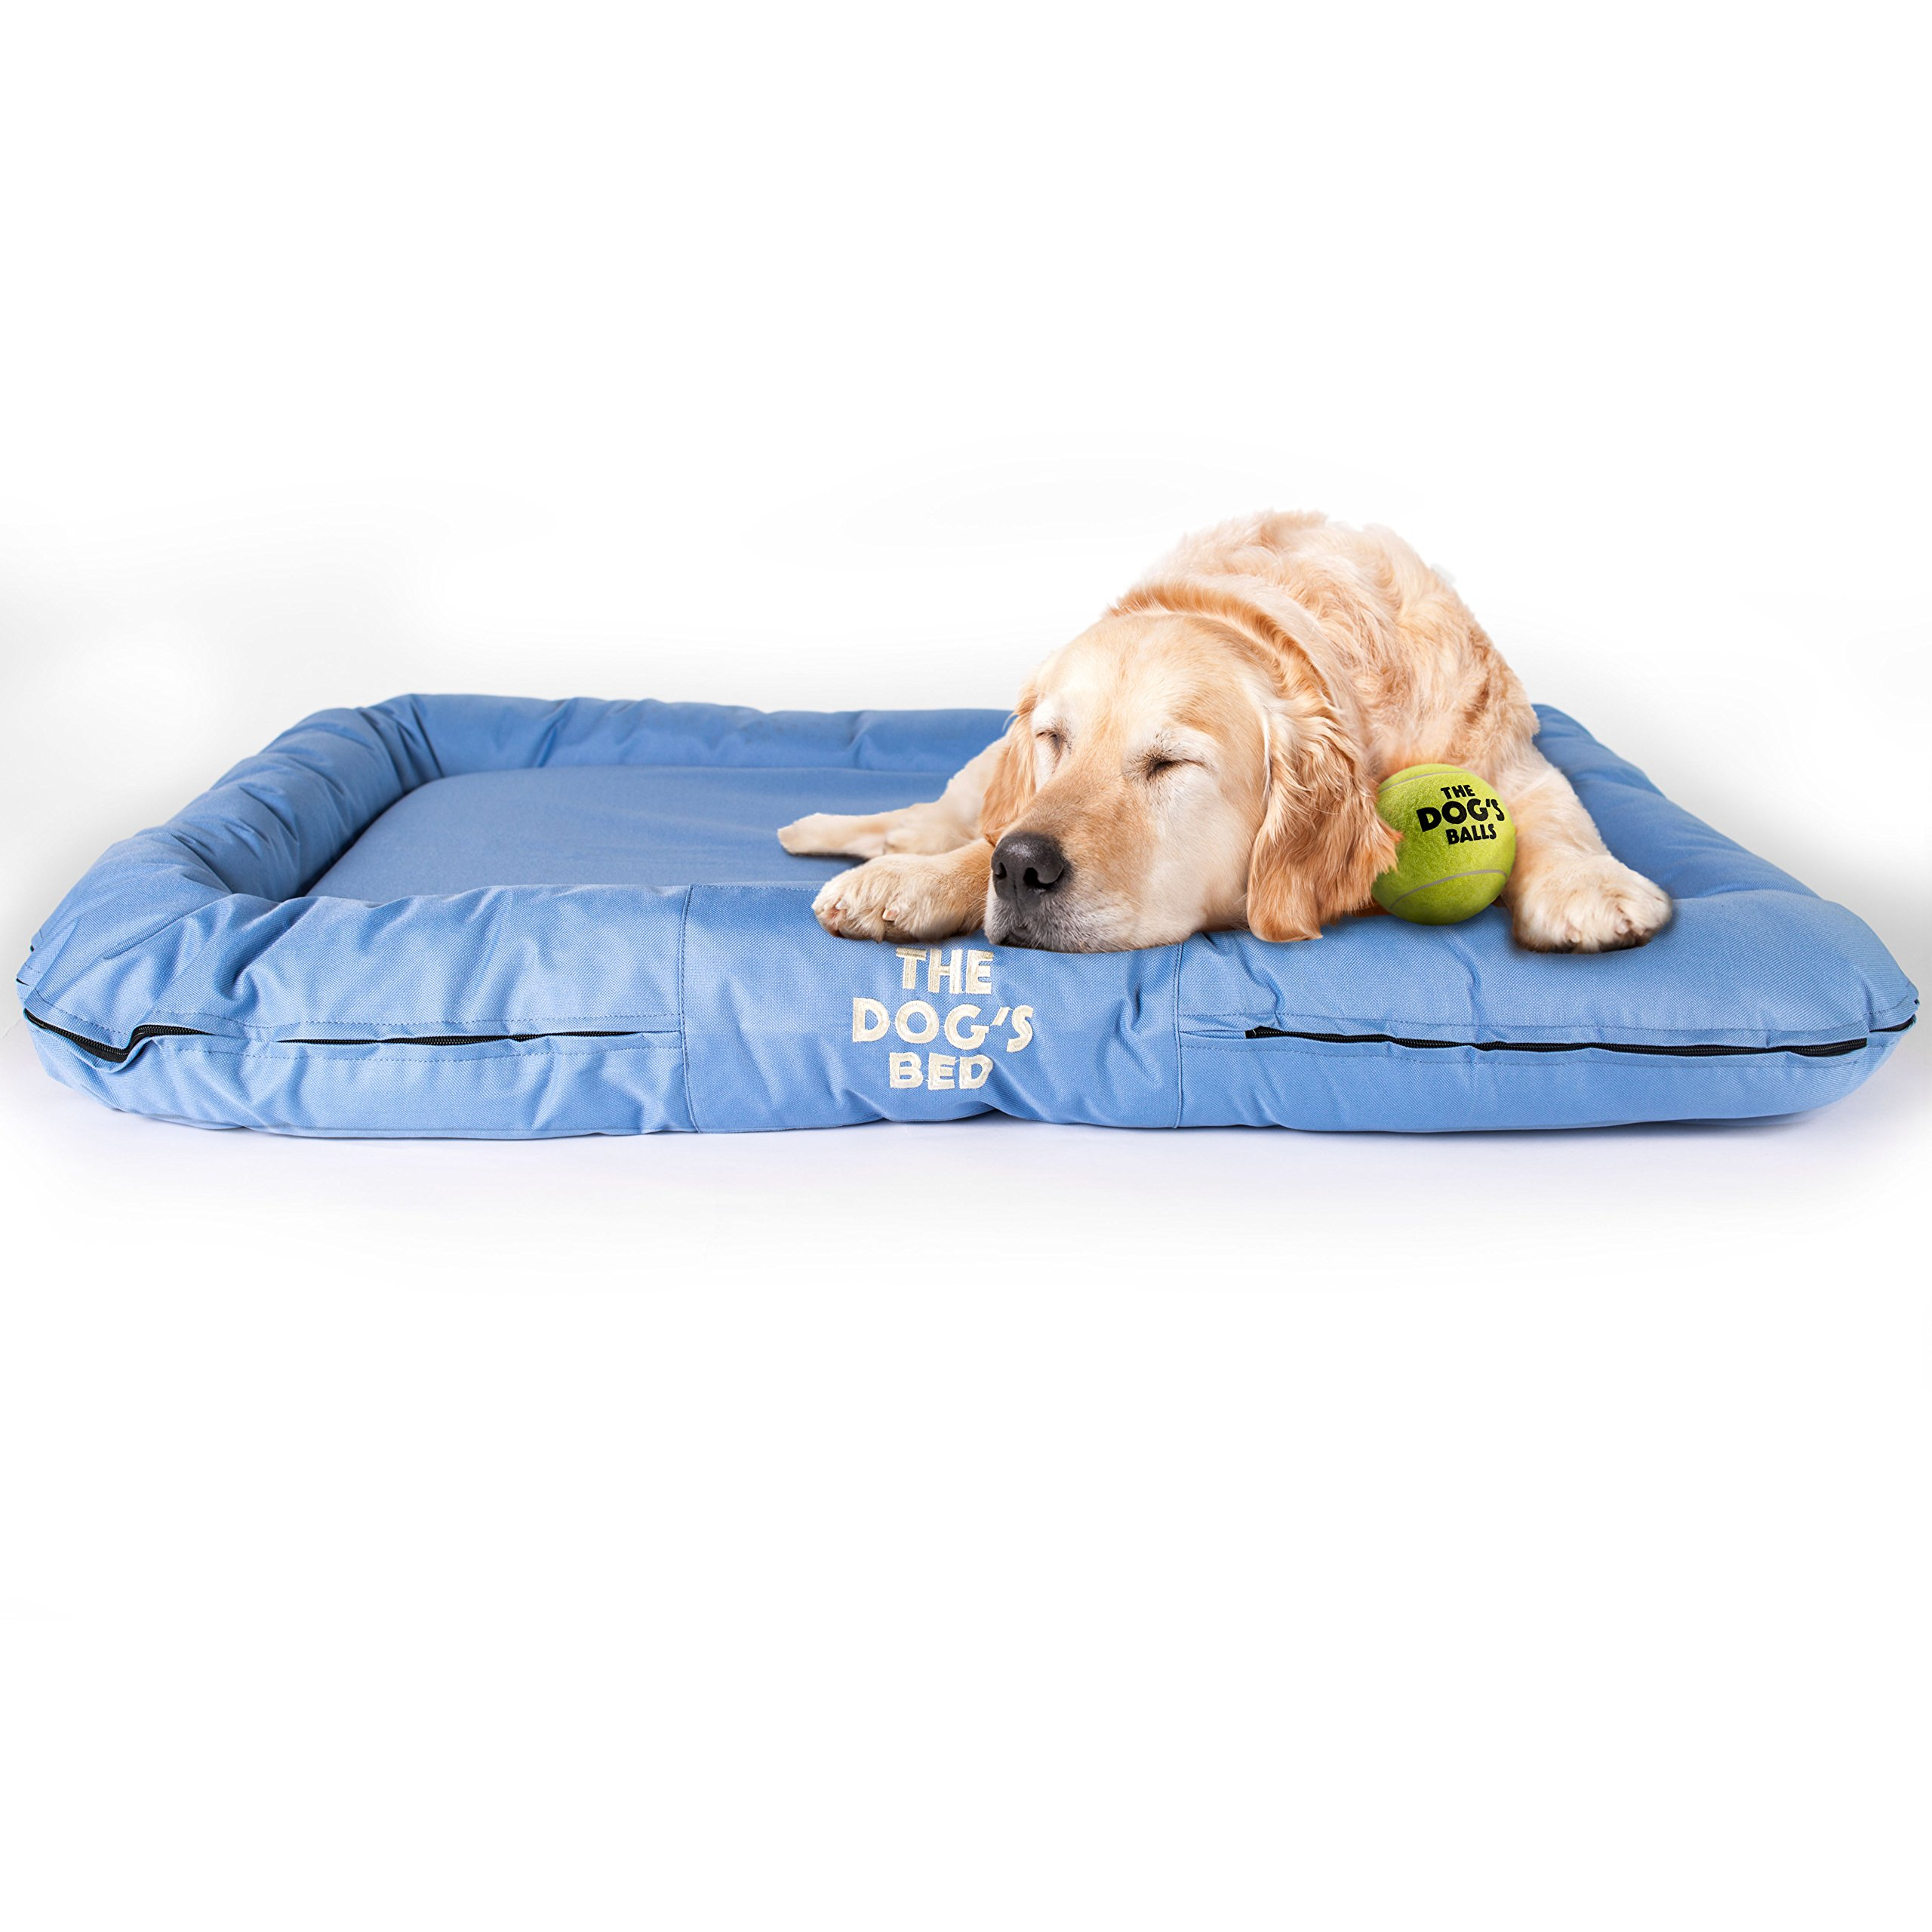 The Dog's Bed, Premium Waterproof Dog Beds, 5 sizes, 7 Colors, Quality Durable Oxford Fabric & Designed for Comfort, Washable Cover, Boarding Kennel Favorite, Happy Hound = Happy Home:)